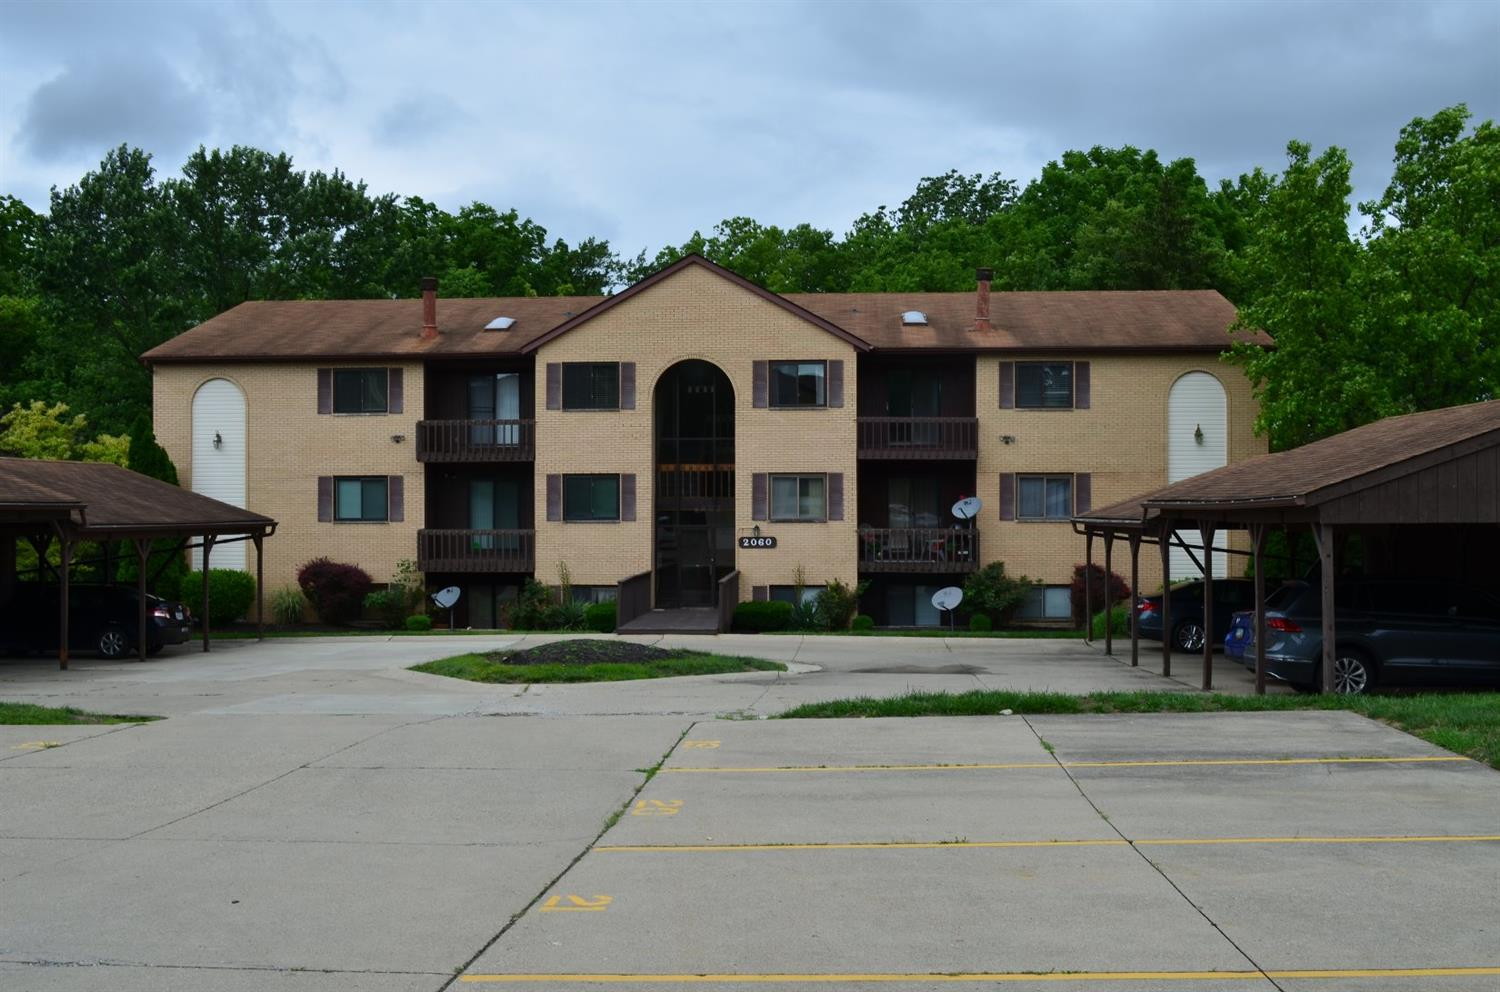 Property for sale at 2060 Woodtrail Drive Unit: 24, Fairfield,  Ohio 45014